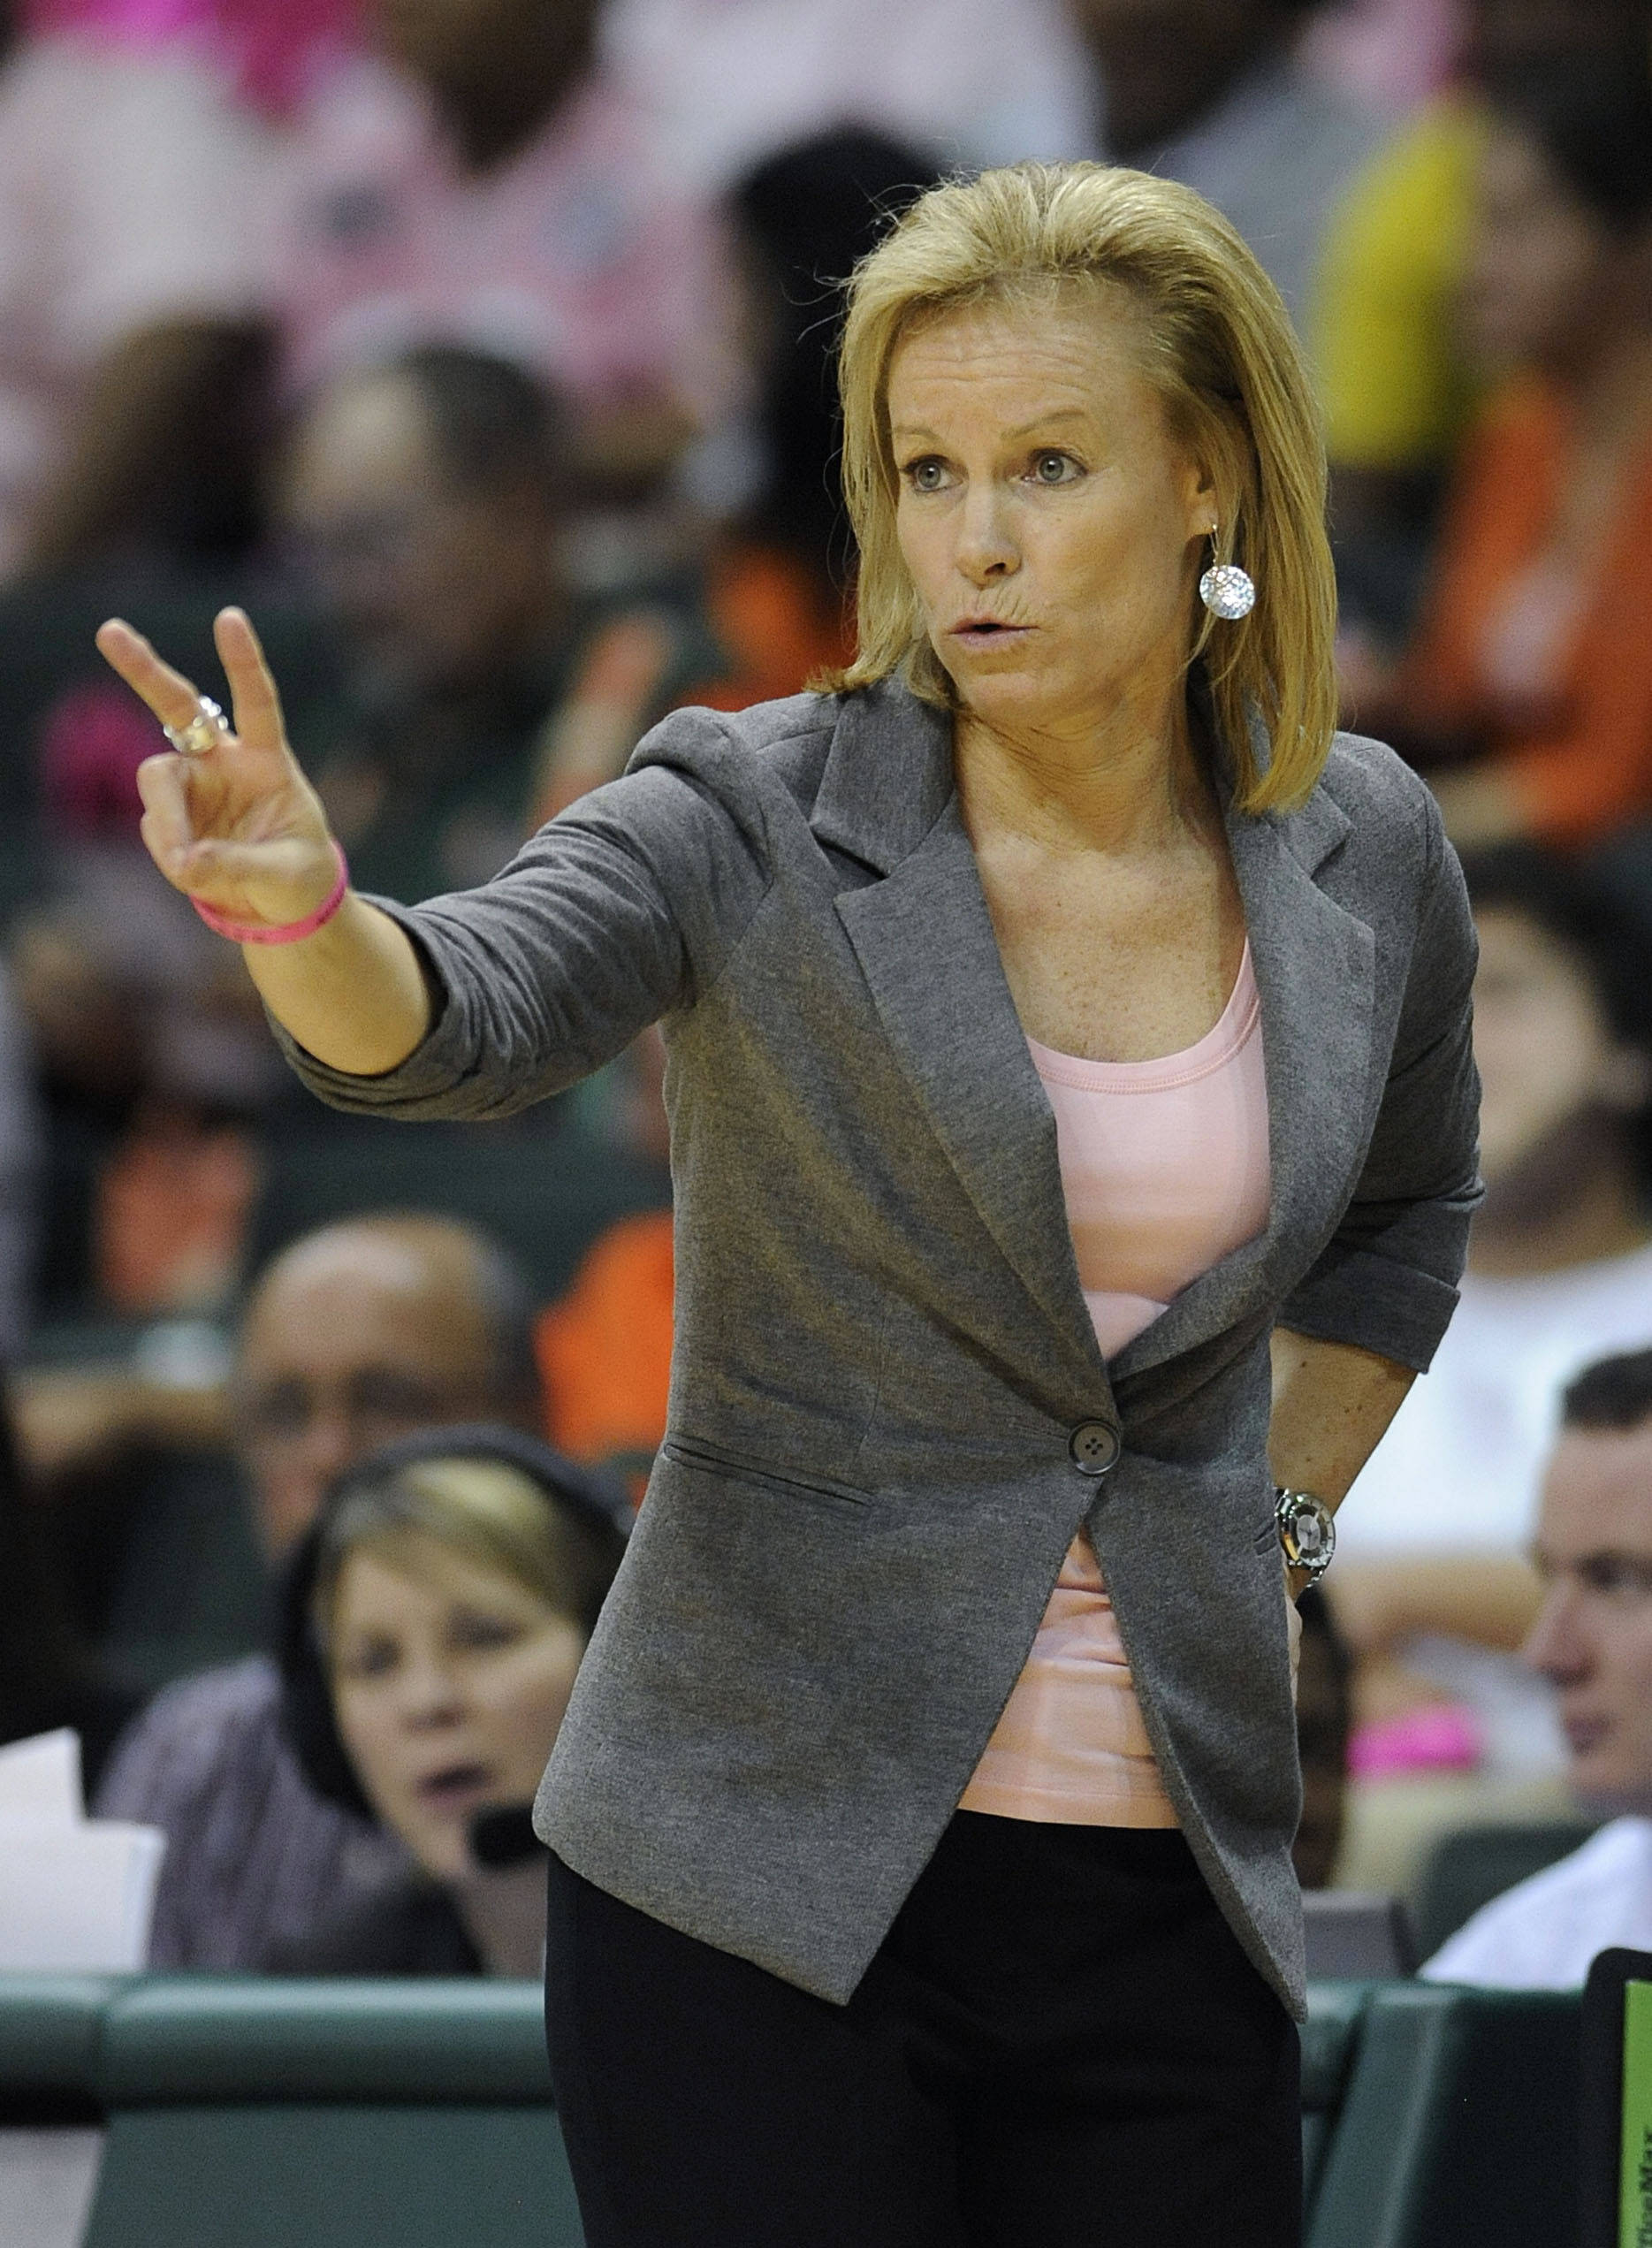 Florida State head coach Sue Semrau gestures from the bench during the second half of an NCAA college basketball game against Miami, Sunday, Feb. 19, 2012, in Coral Gables, Fla. Miami defeated Florida State 67-60. (AP Photo/Rhona Wise)